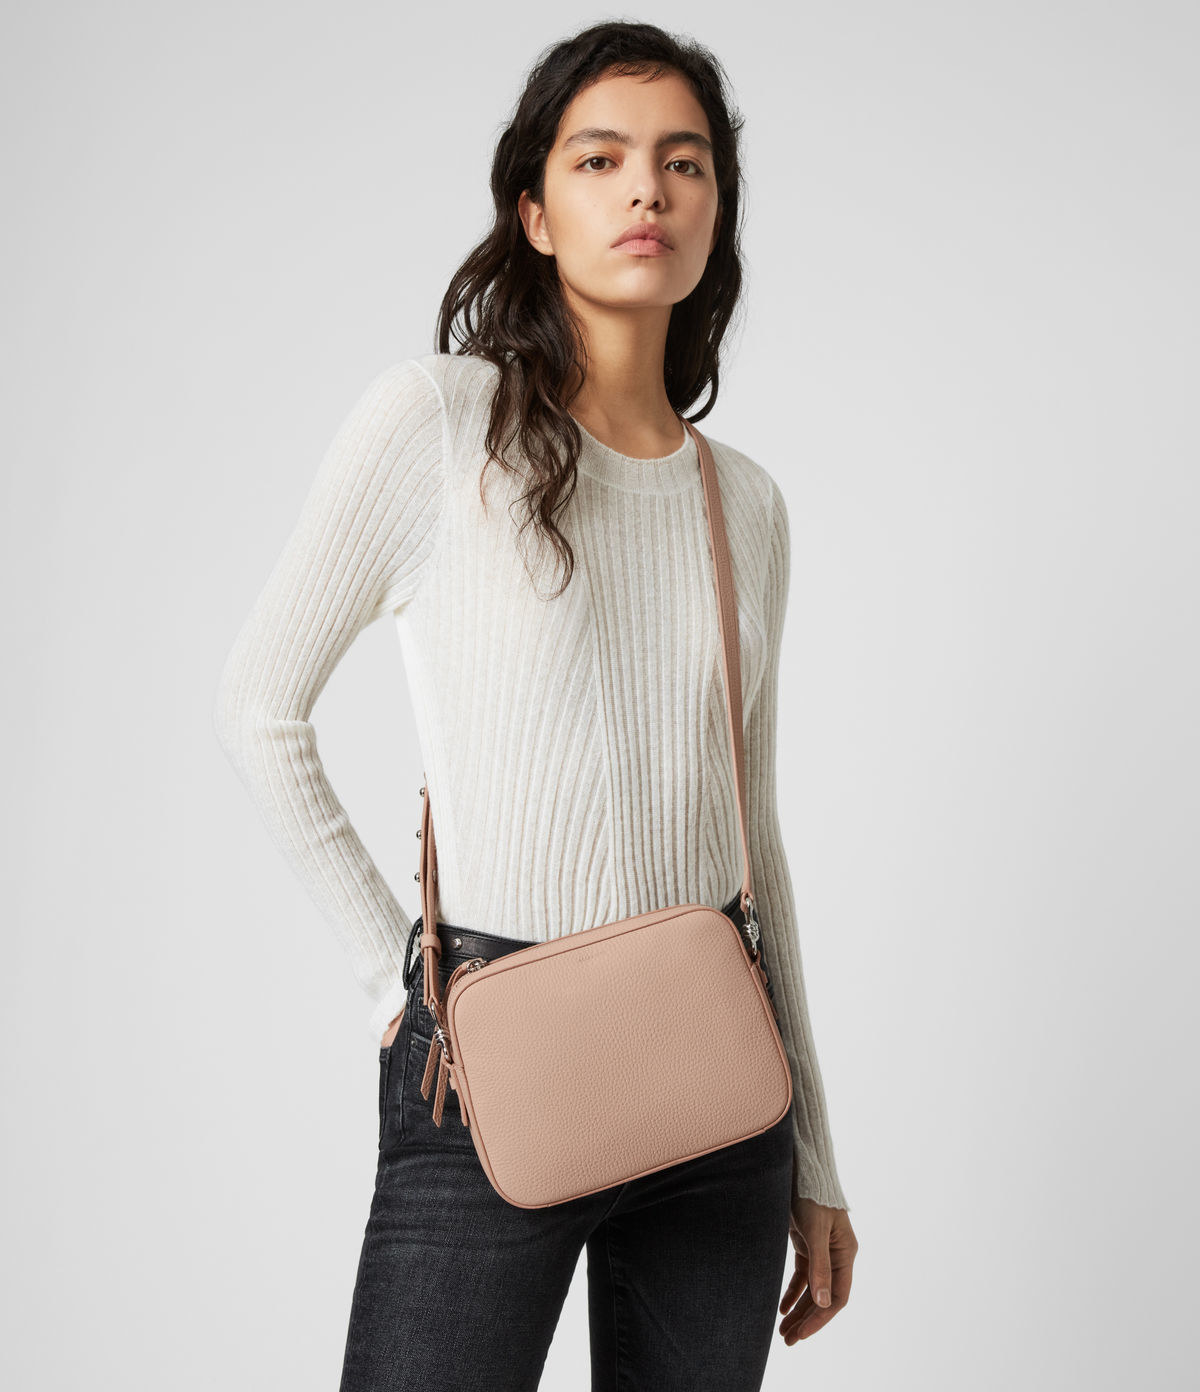 model wearing light pink rectangle shape crossbody bag